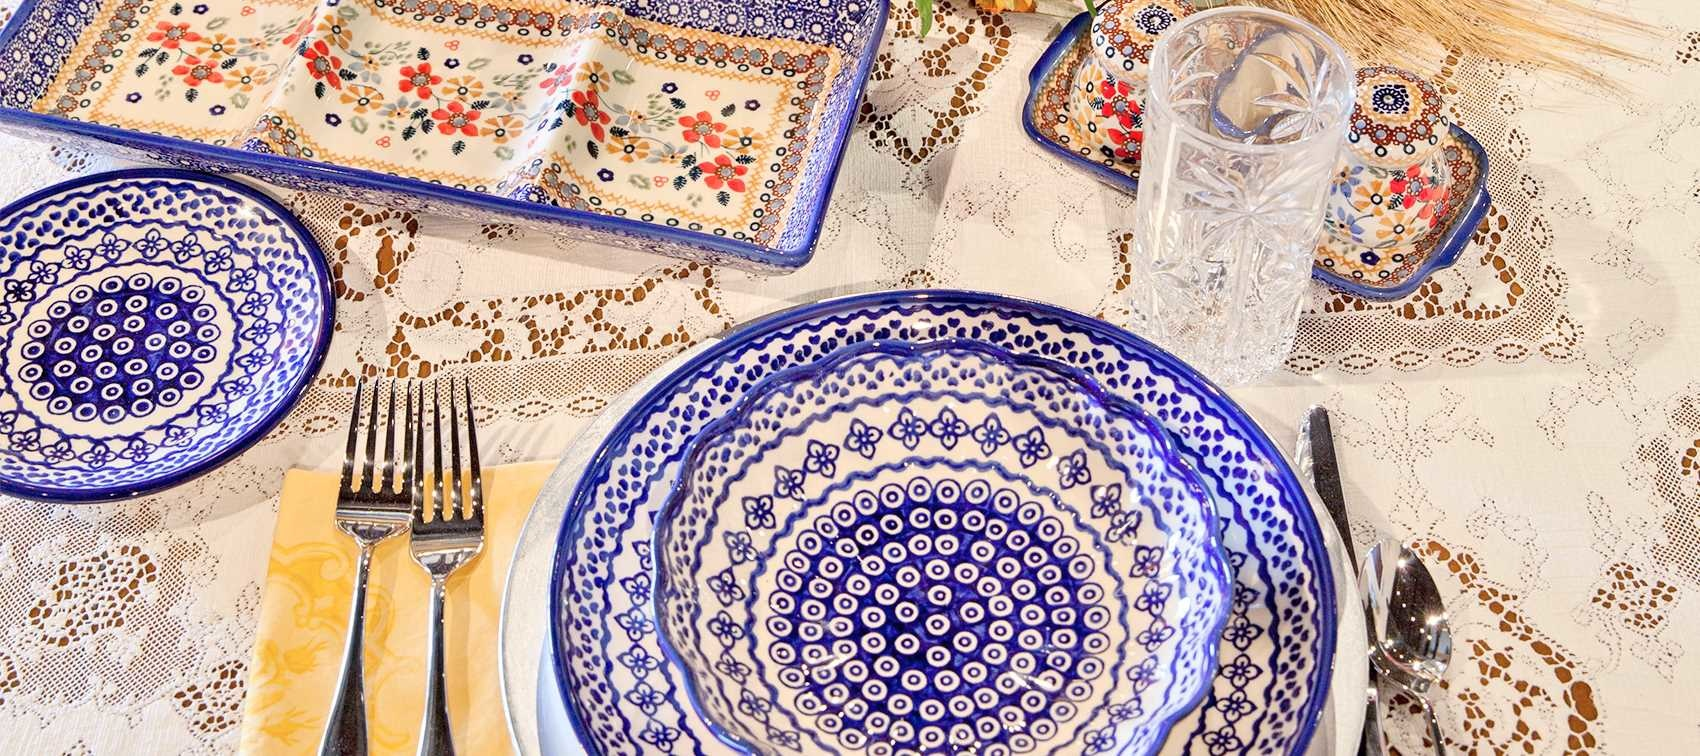 Fill Your Bridal Registry With Beautiful Polish Pottery Plates